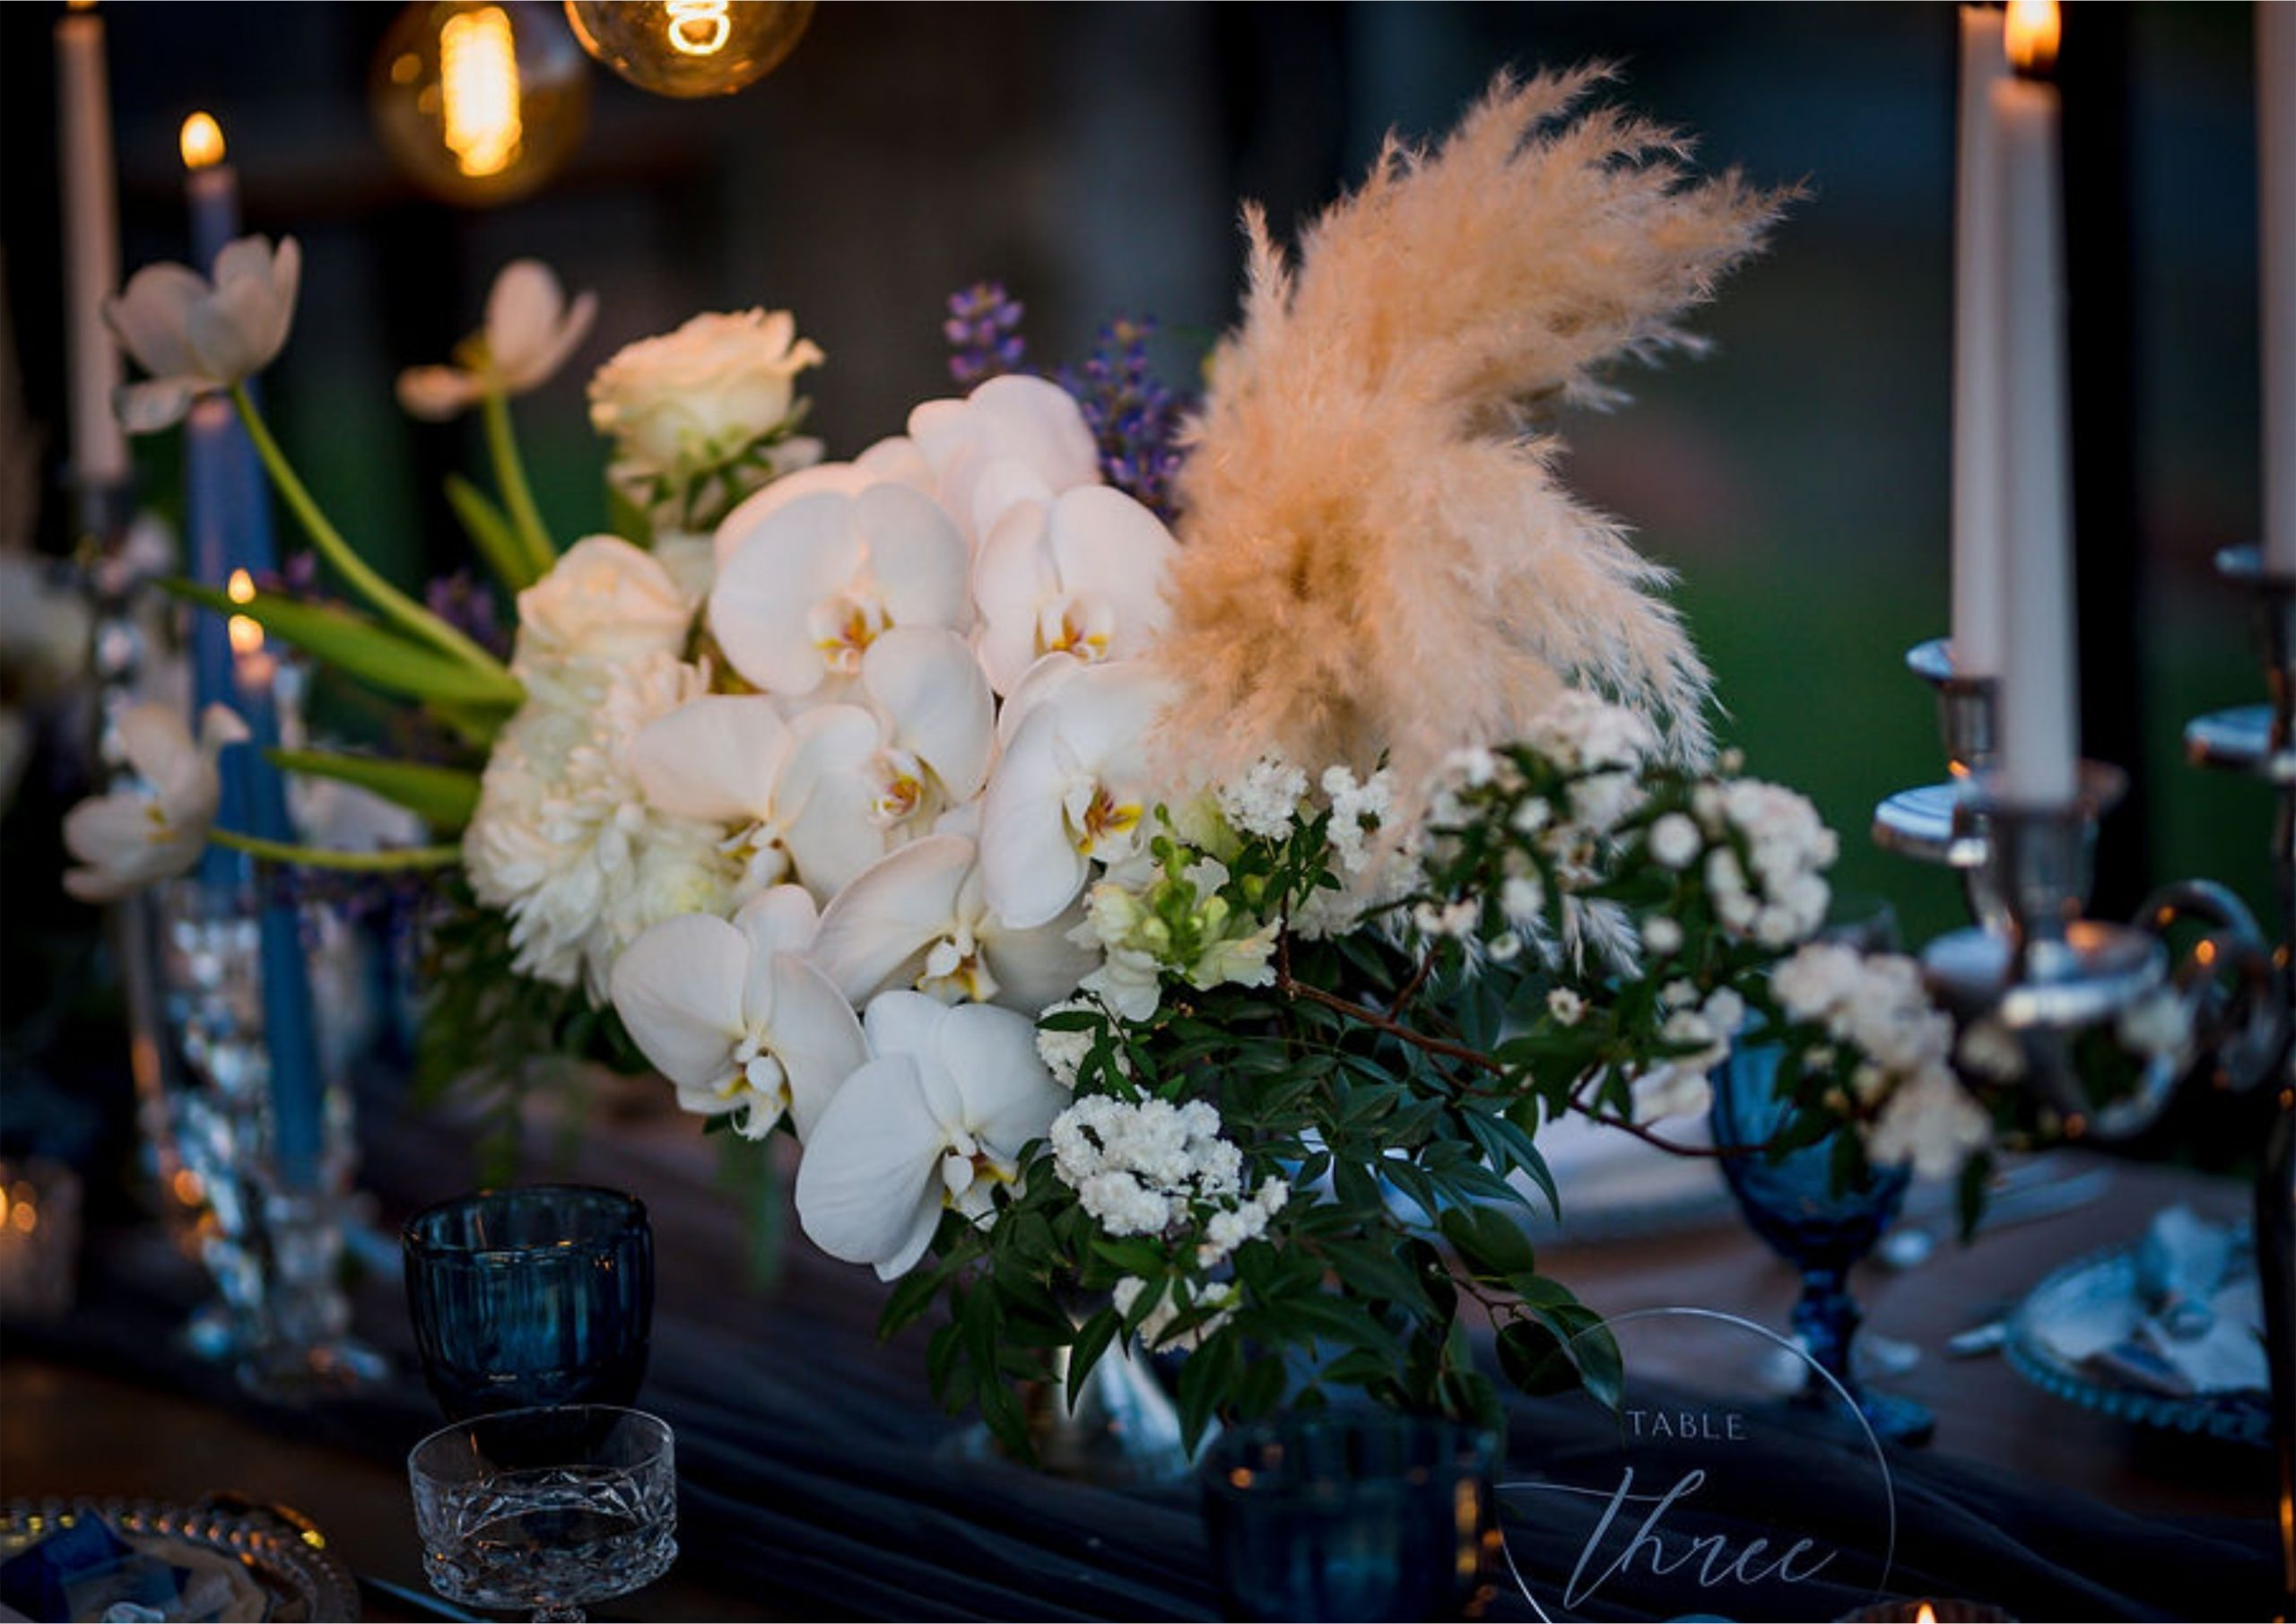 Bruidsgids Wedding Guide My Pretty Vintage Romantic Wedding Urns Candle Lighting Event Decor Photography by Gustav Klotz